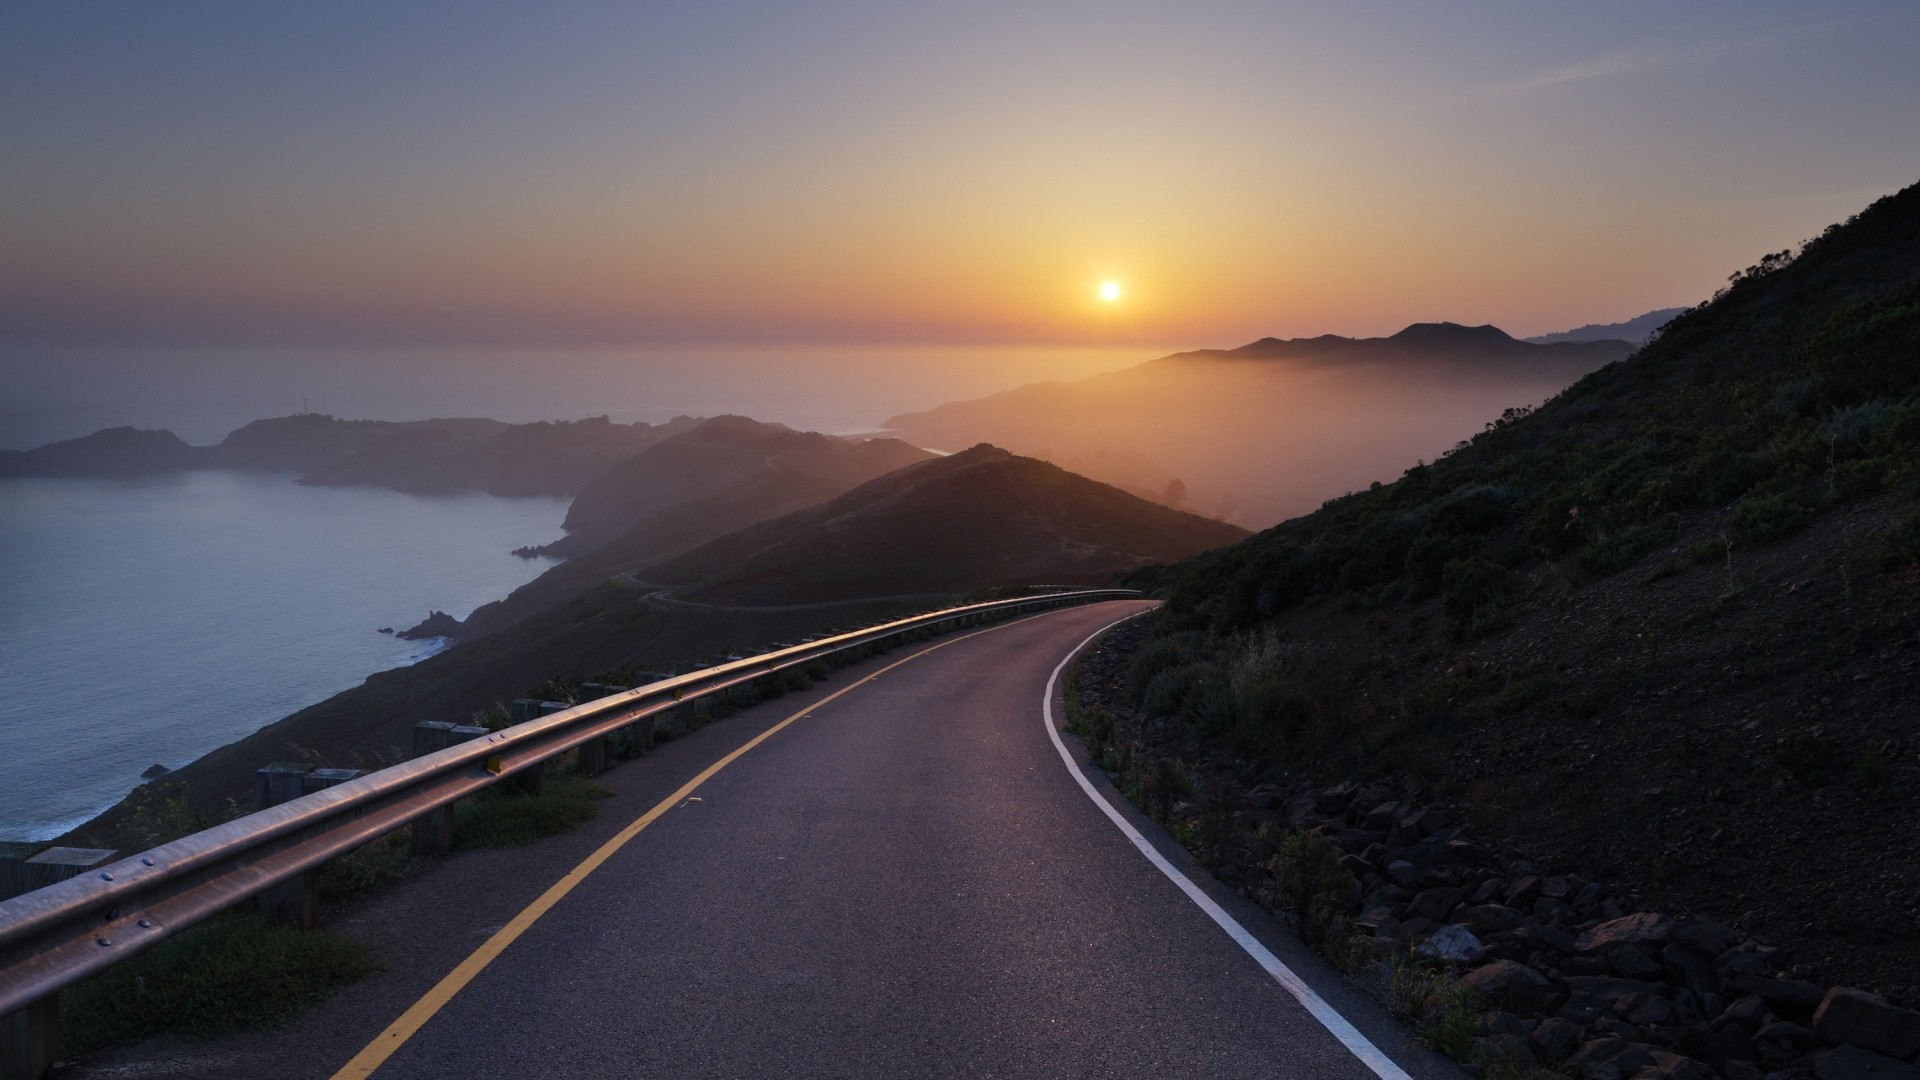 … Background Full HD 1080p. Wallpaper conzelman road, sunset,  turning road, sea